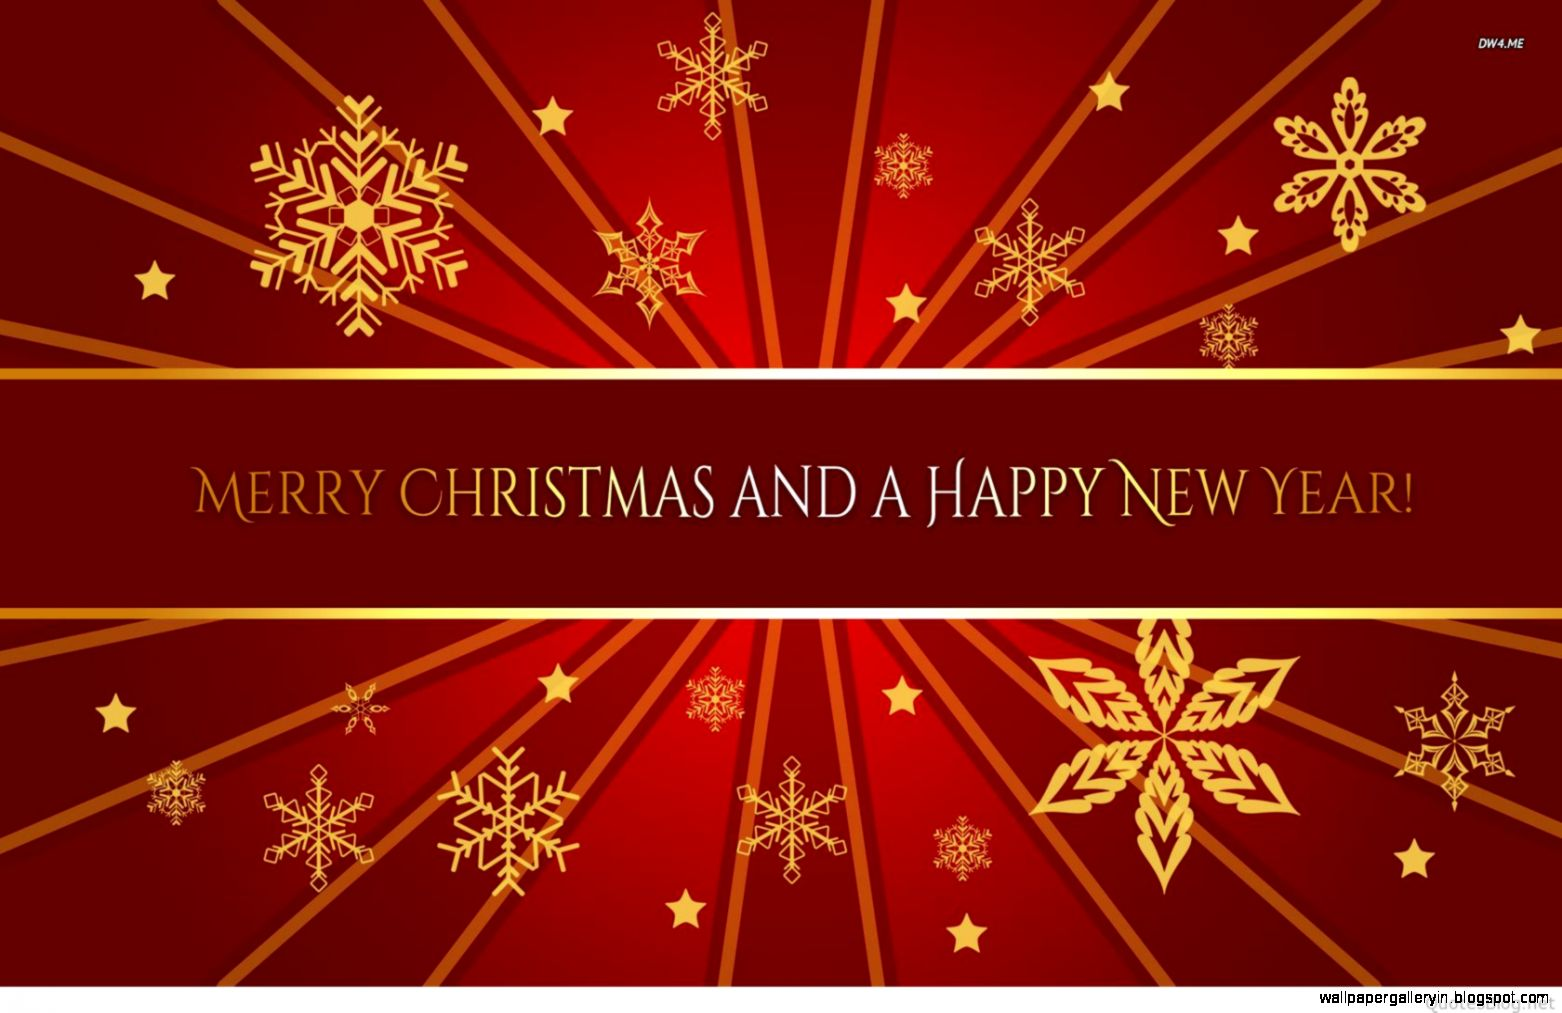 View Original Size Merry Christmas Happy New Year Holidays Wallpaper Free